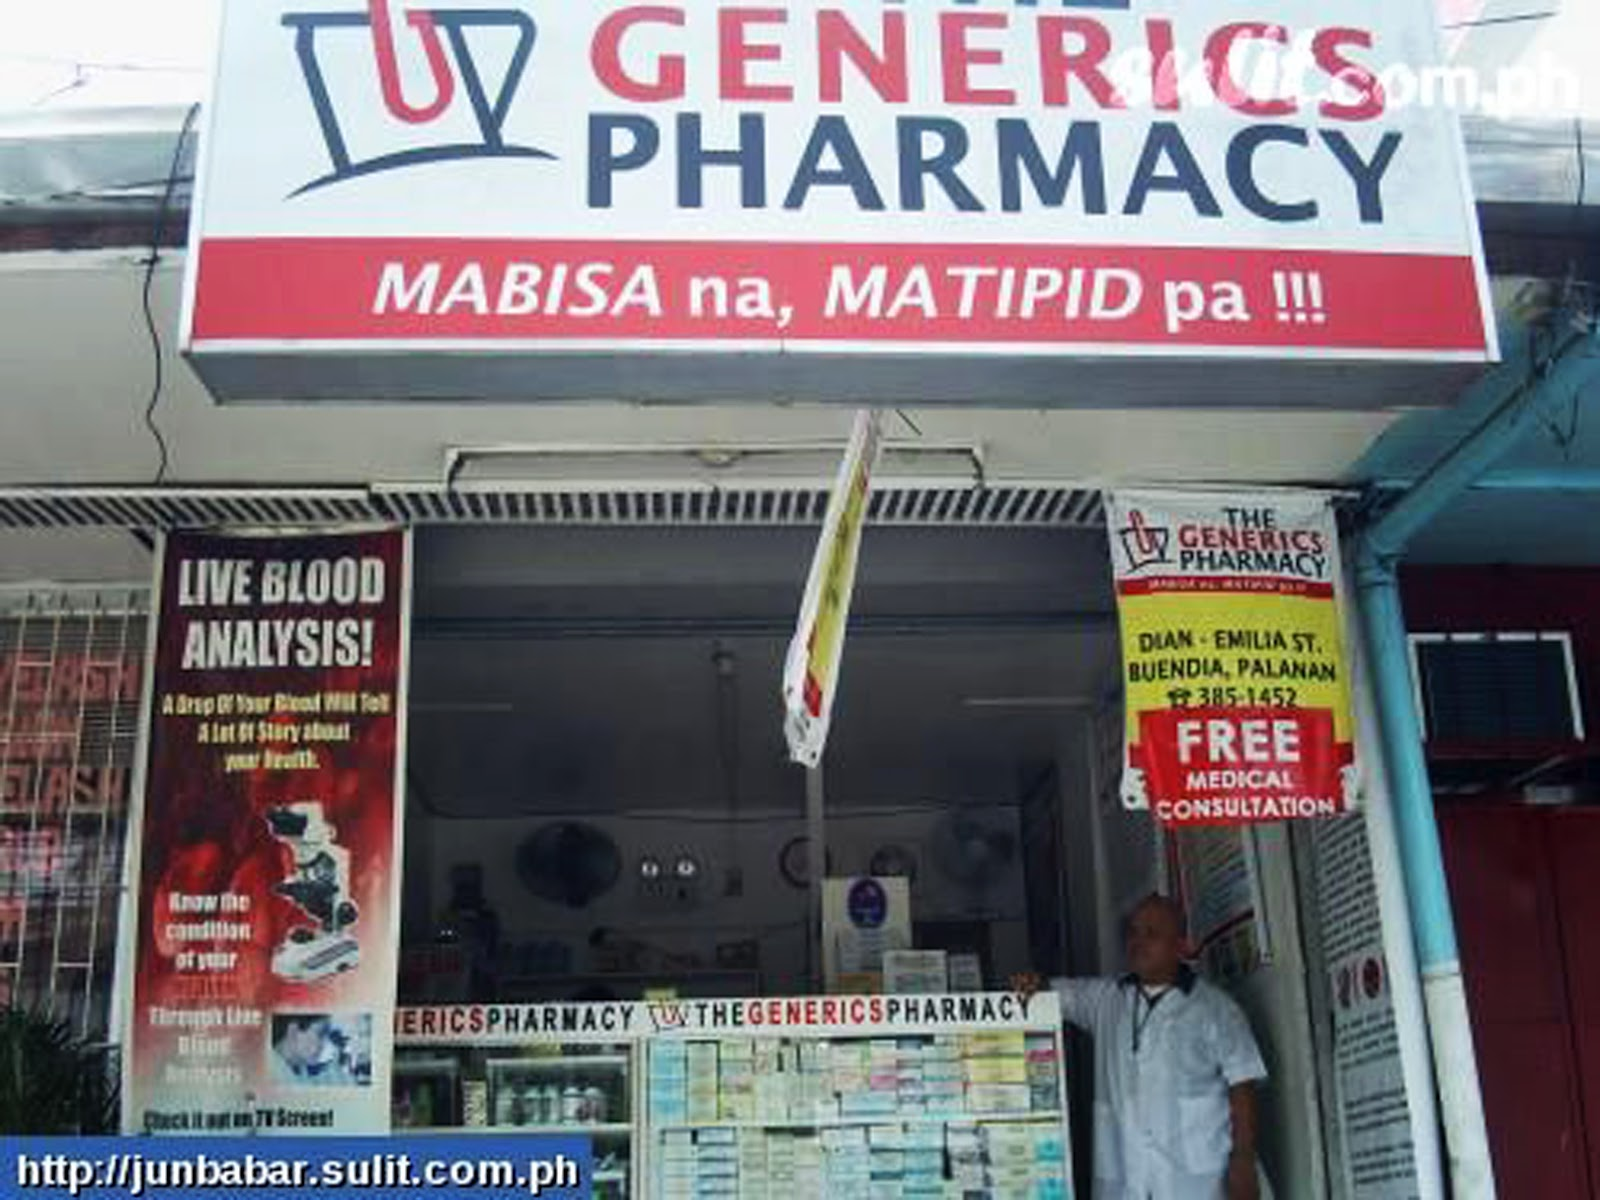 the generics pharmacy The generics pharmacy - kamuning road, quezon city (pharmacies) is located at 17a kamuning road, quezon city (beside delgado hospital), philippines more.